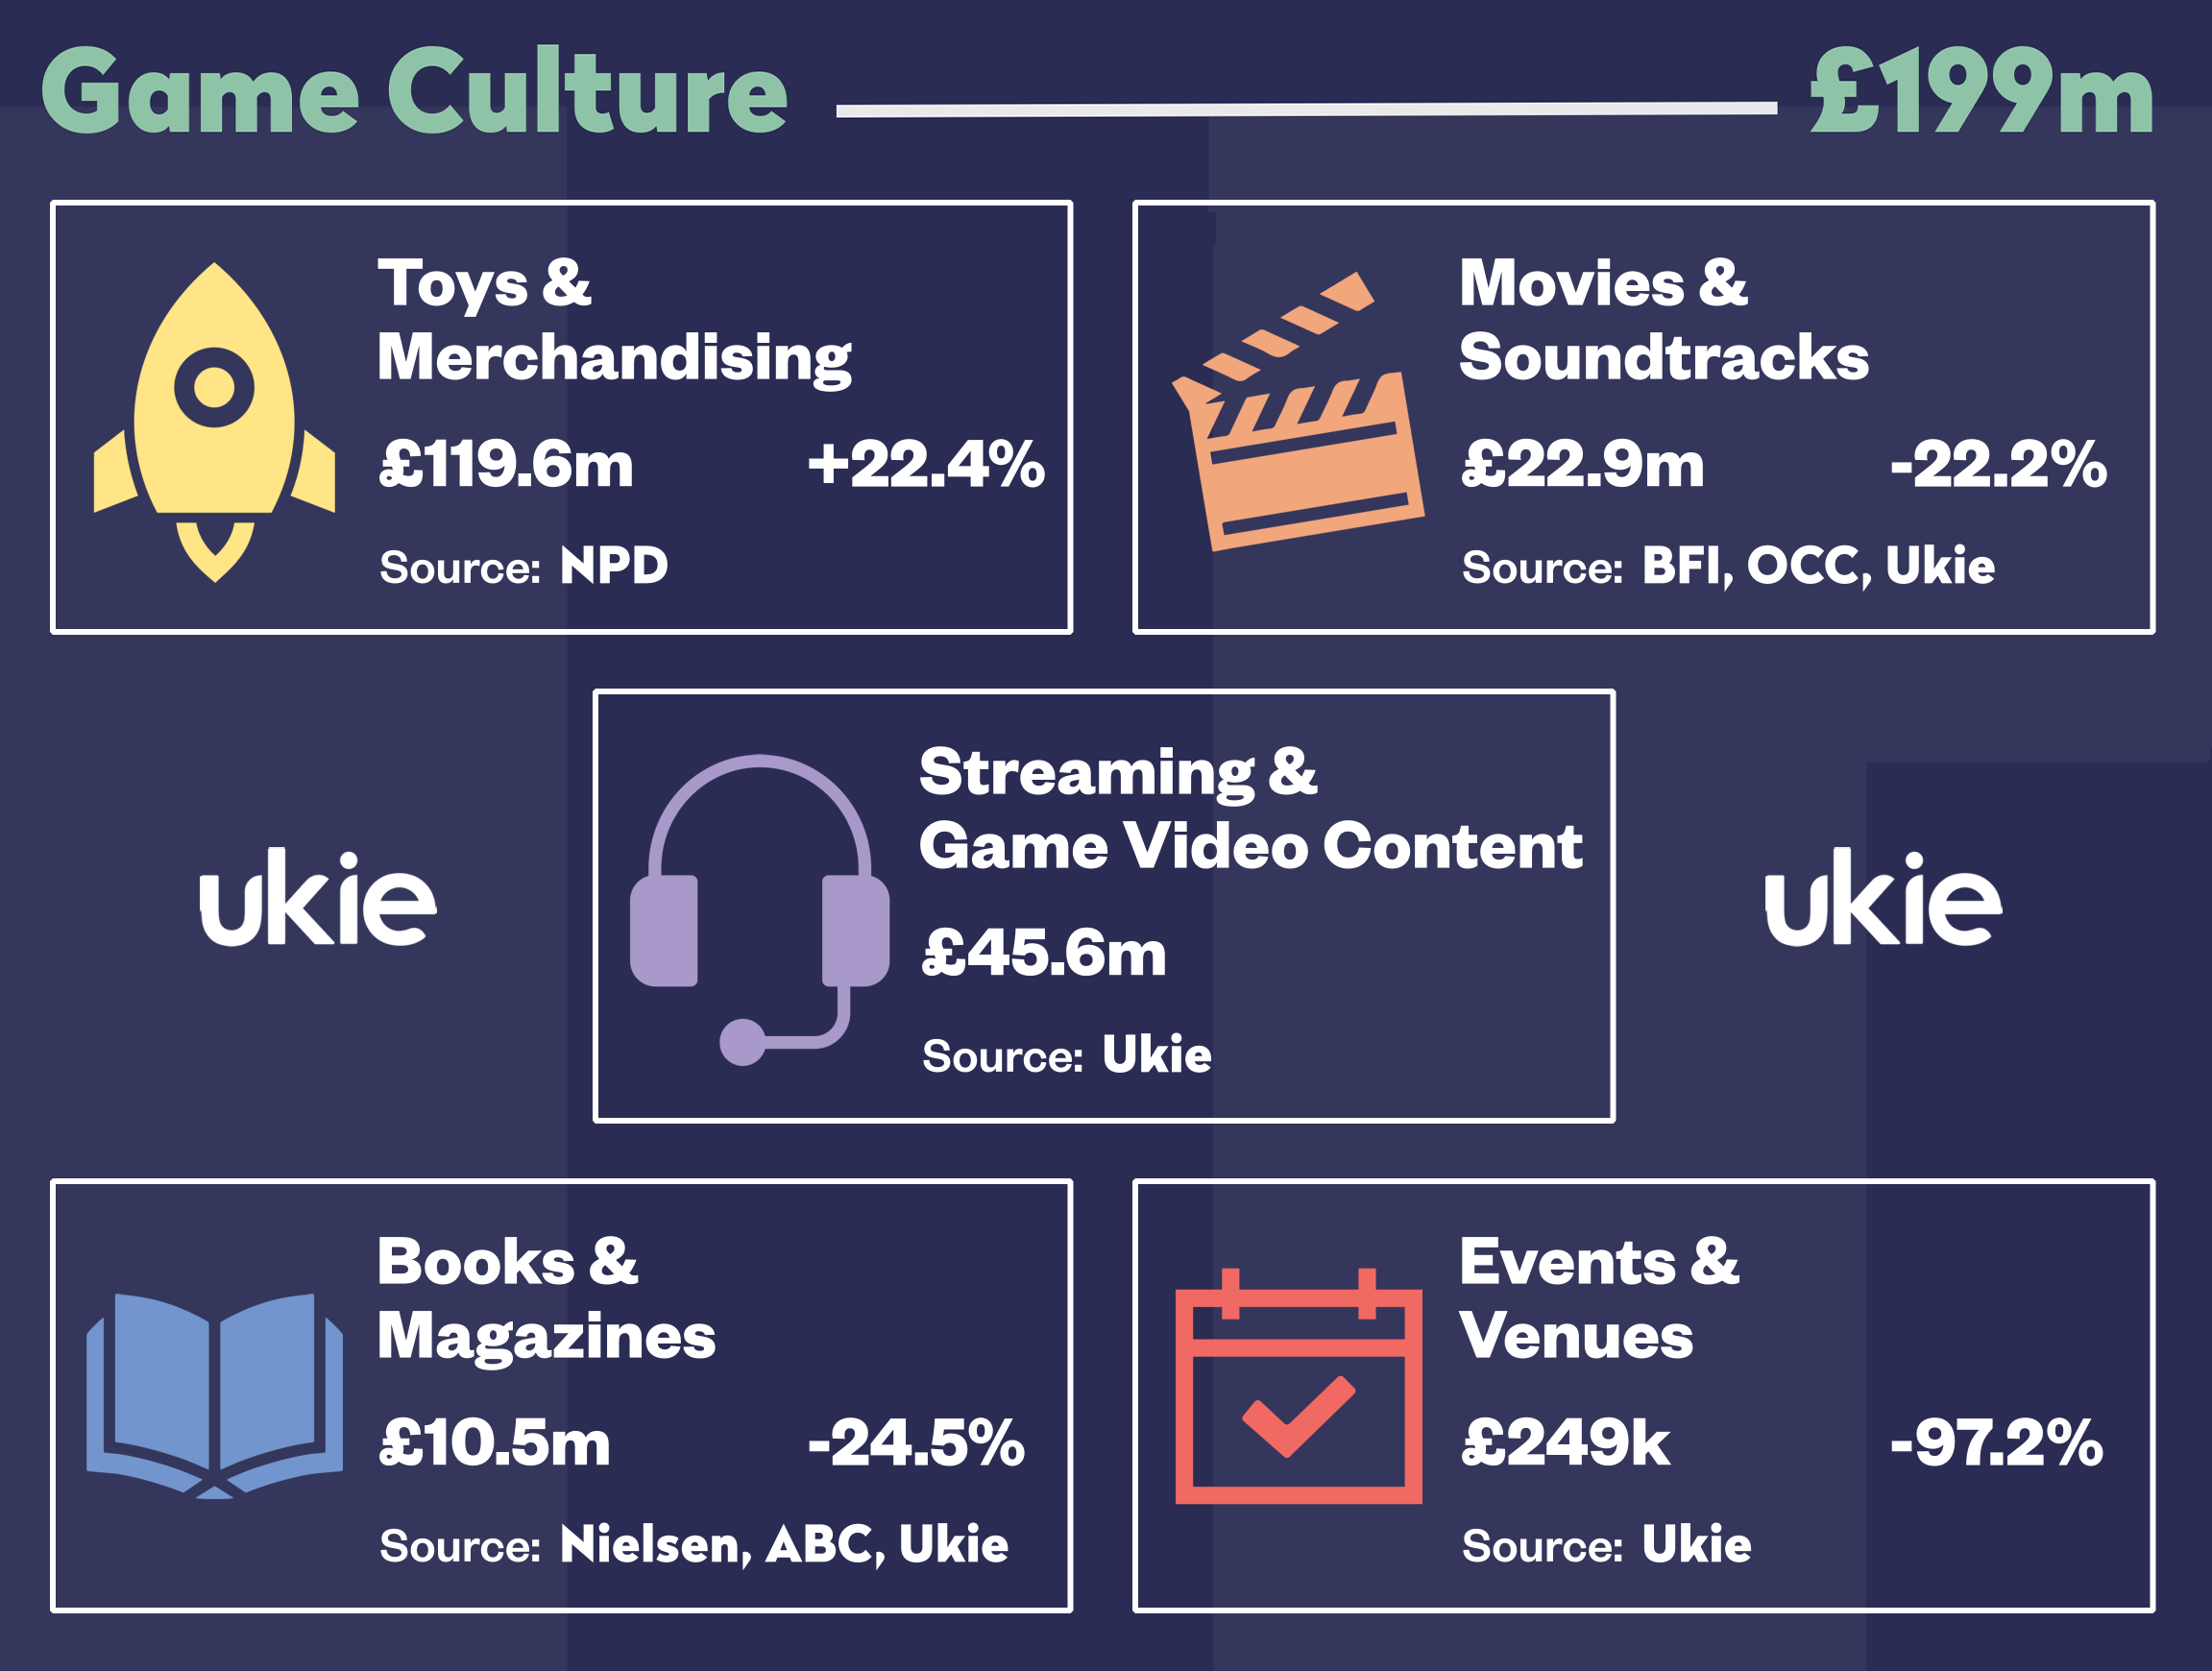 Game culture revenues measure the wider impact of games.